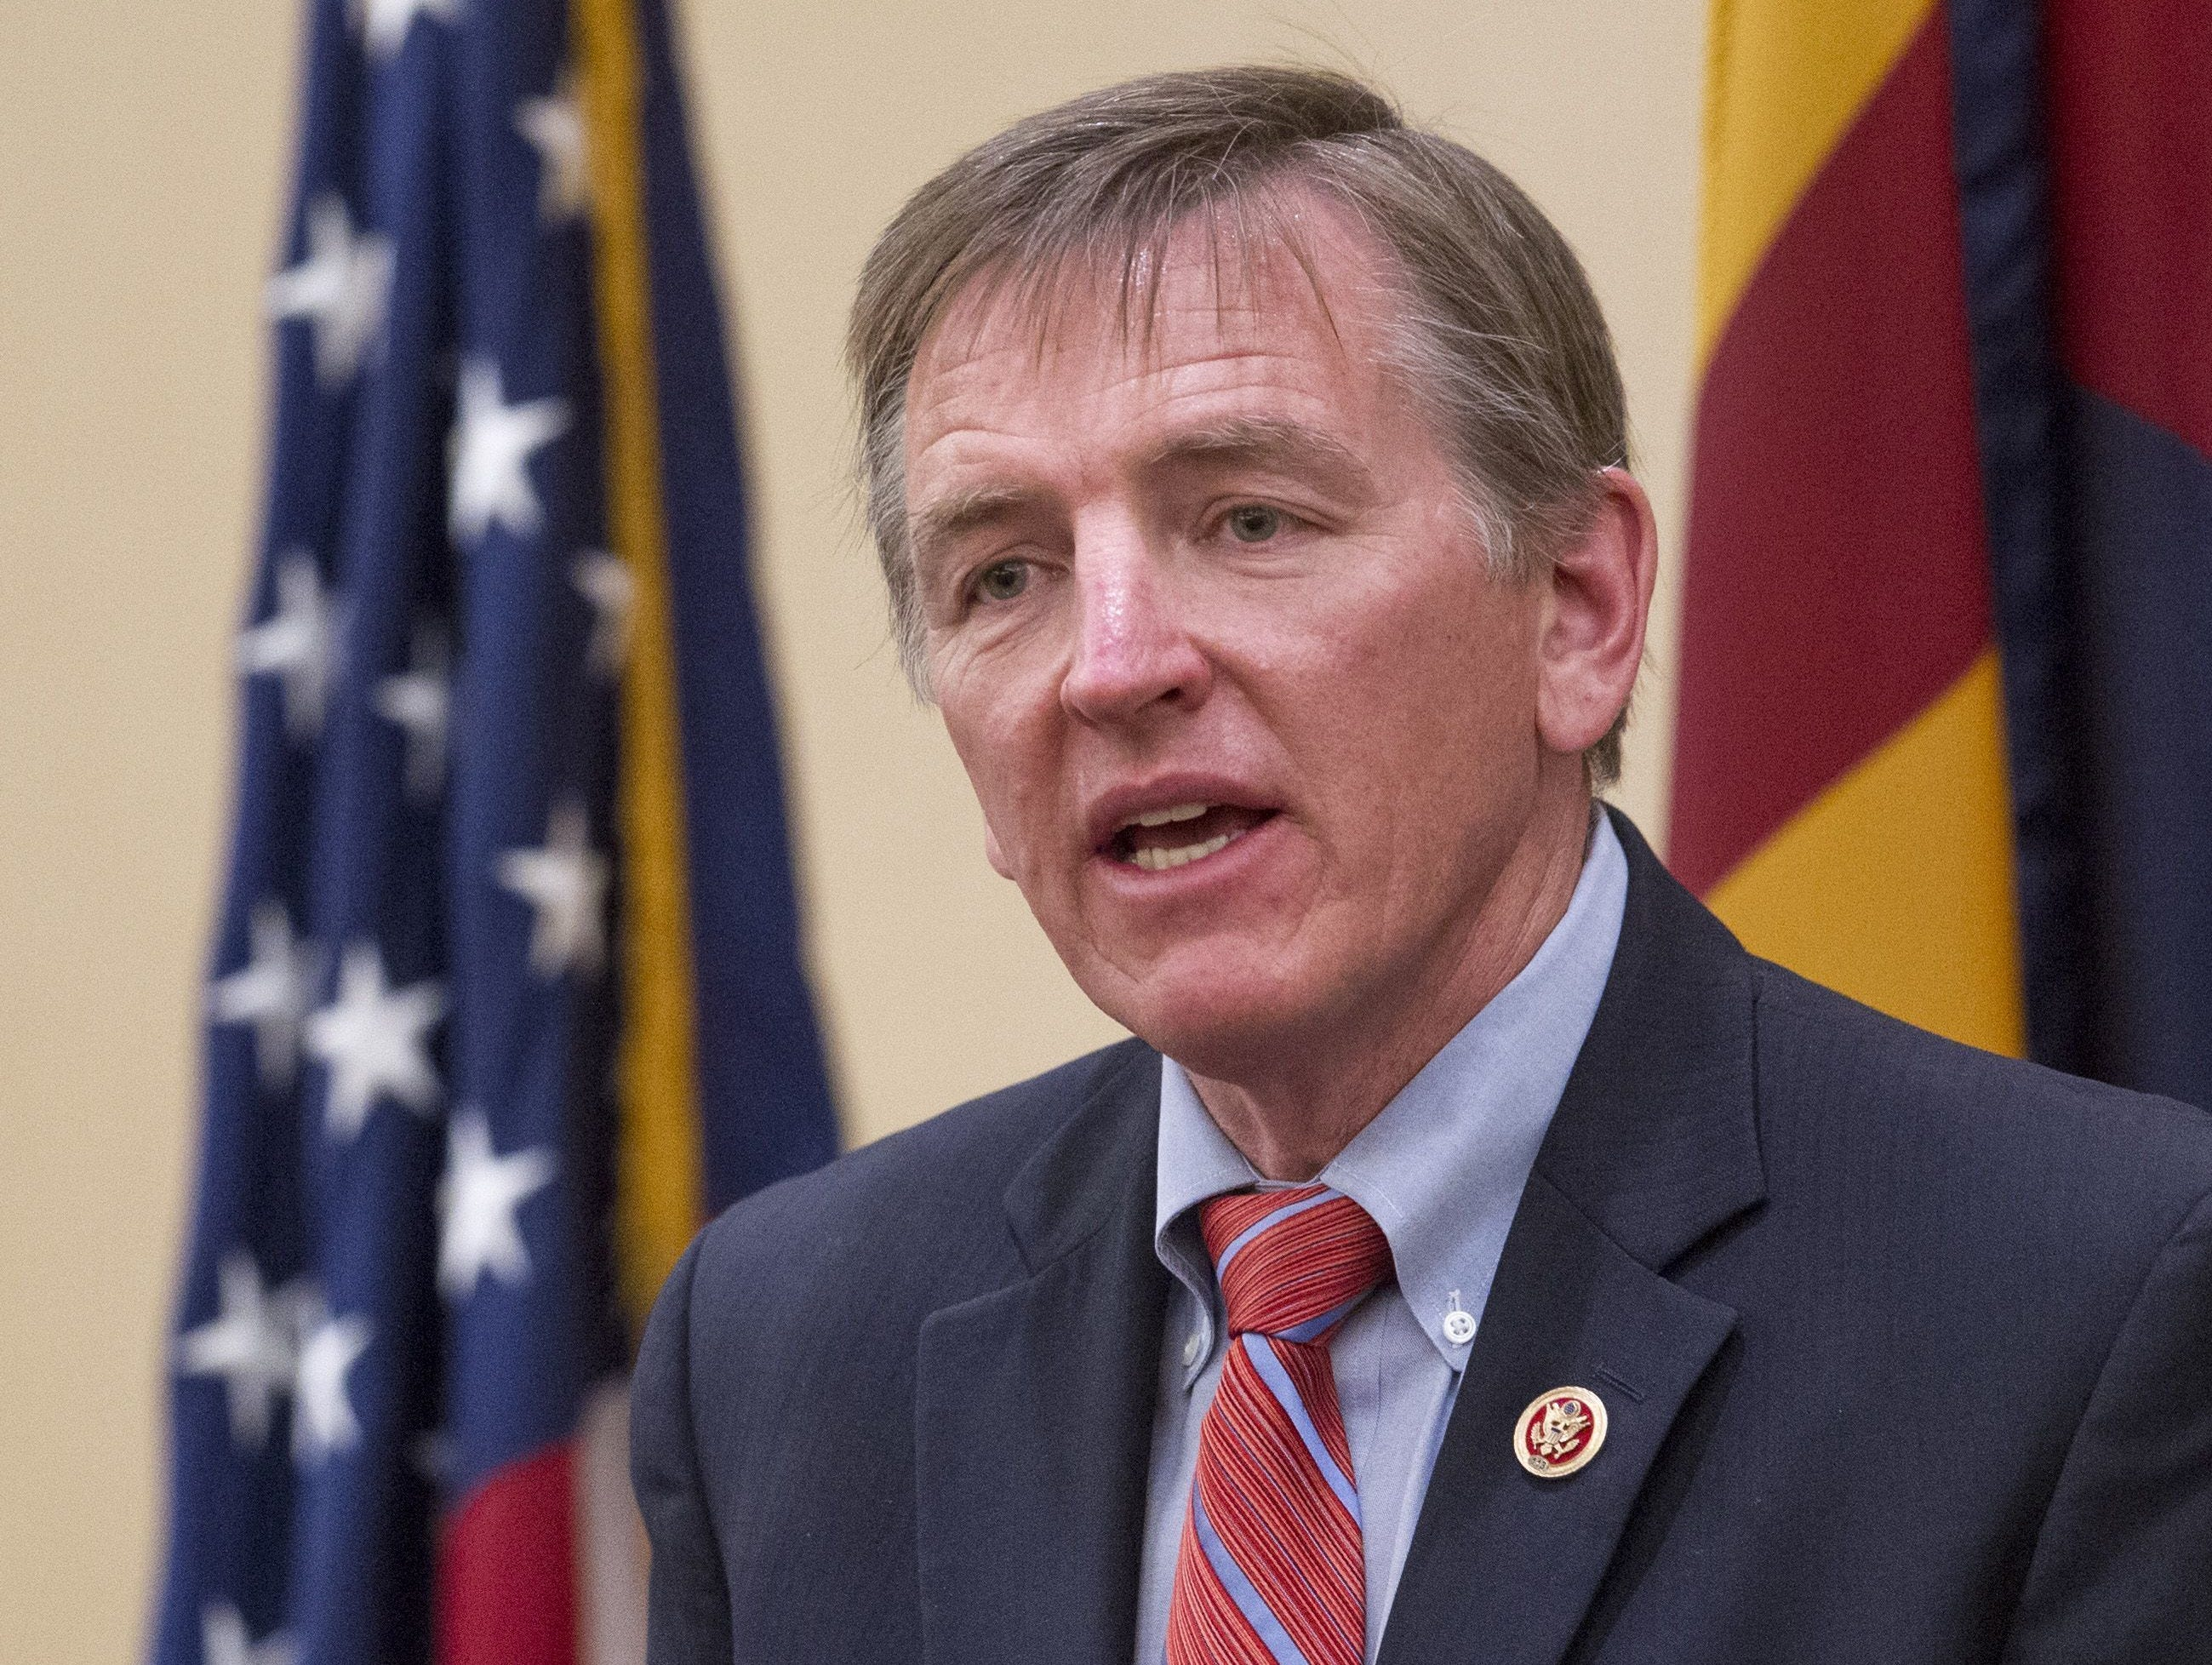 Rep. Paul Gosar Won re-election in 2018. Served four terms in the U.S. House of Representatives.